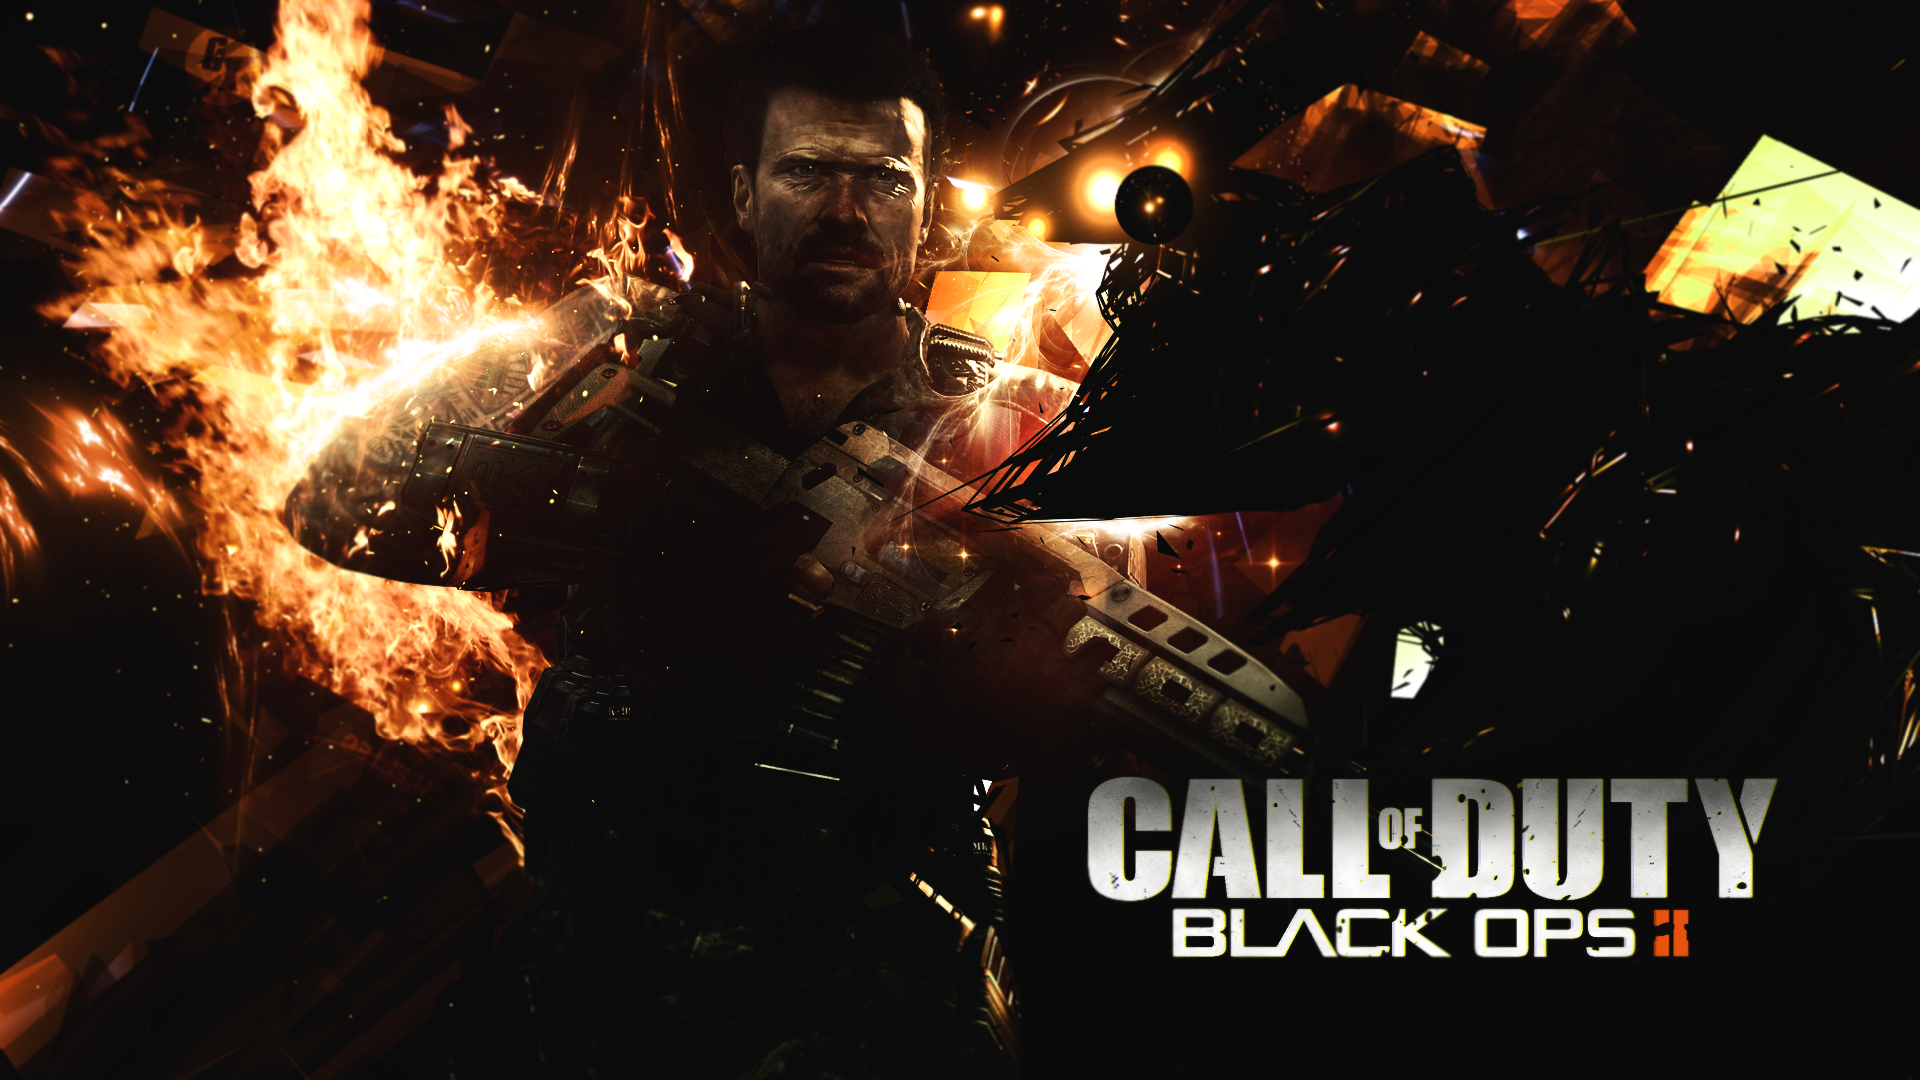 HD Black Ops 2 Backgrounds | PixelsTalk.Net